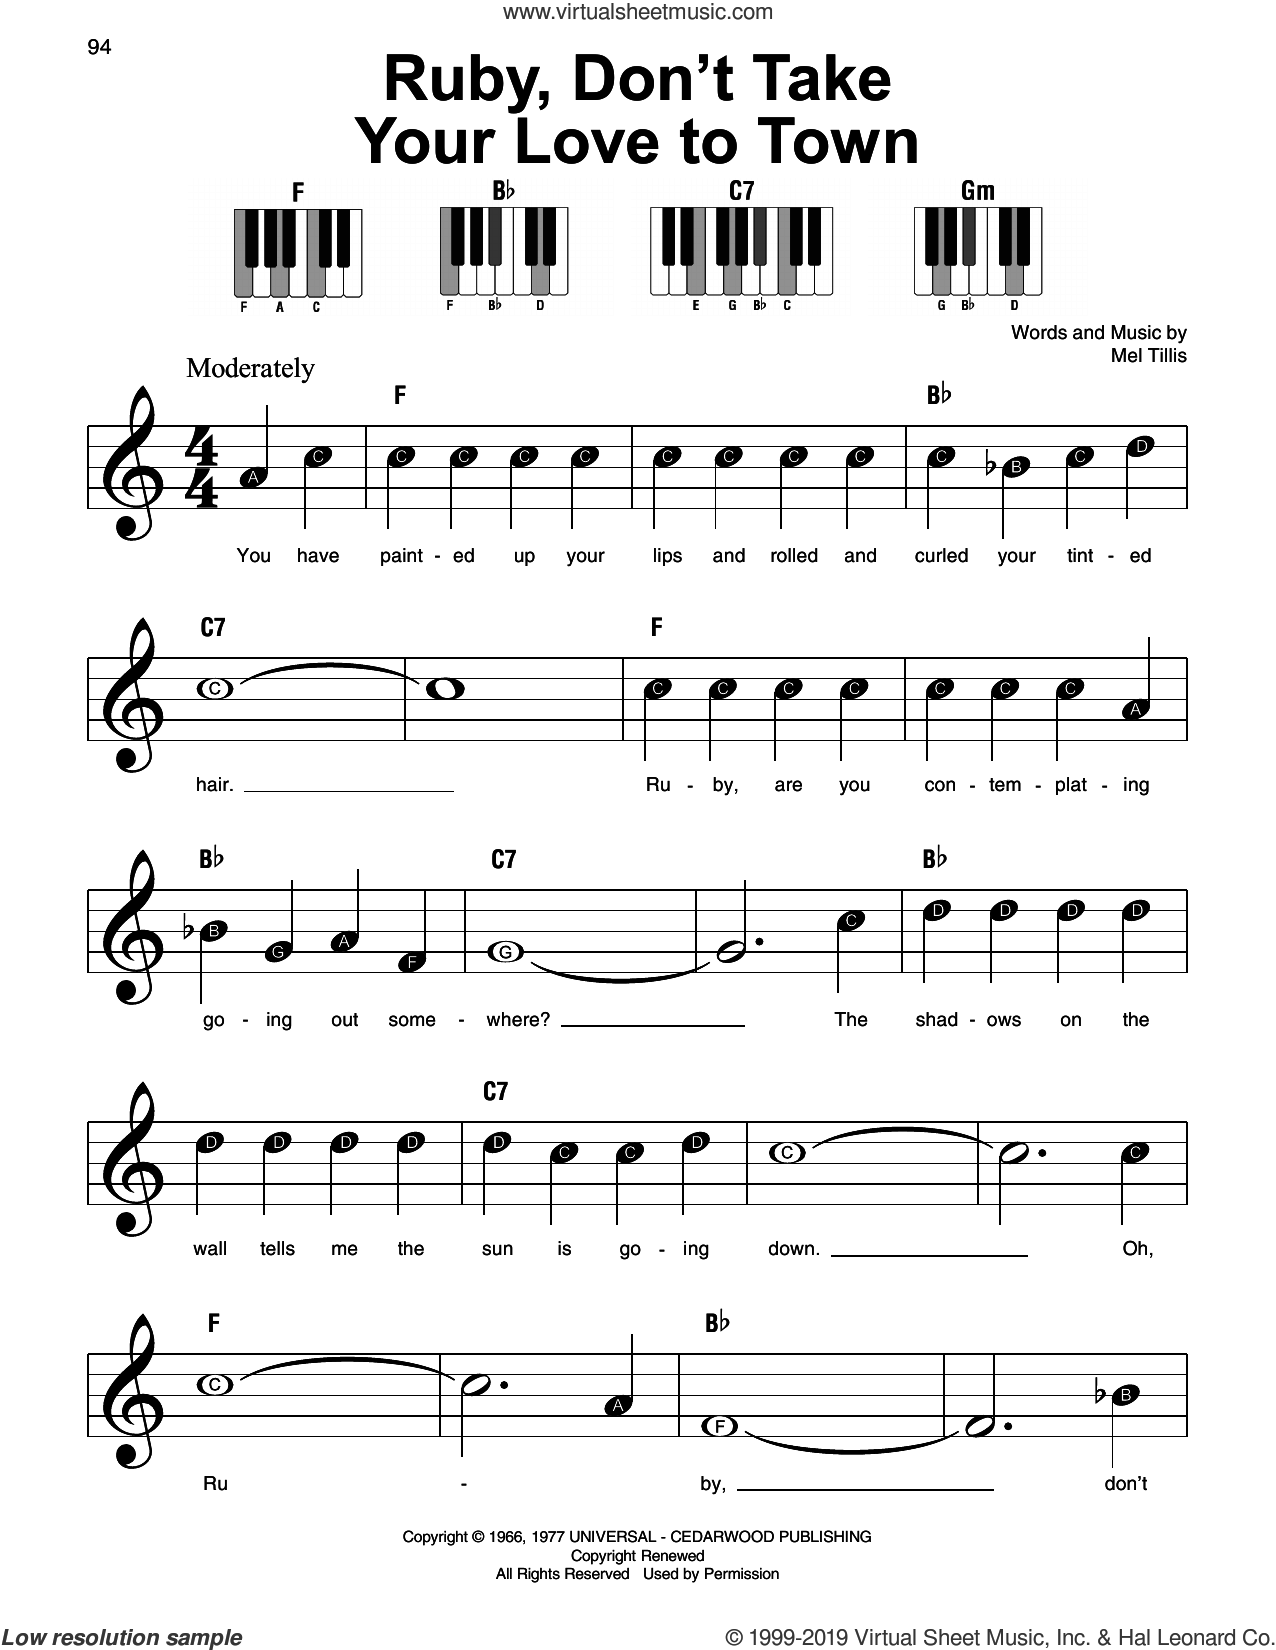 Ruby, Don't Take Your Love To Town sheet music for piano solo by Kenny Rogers and Mel Tillis, beginner skill level